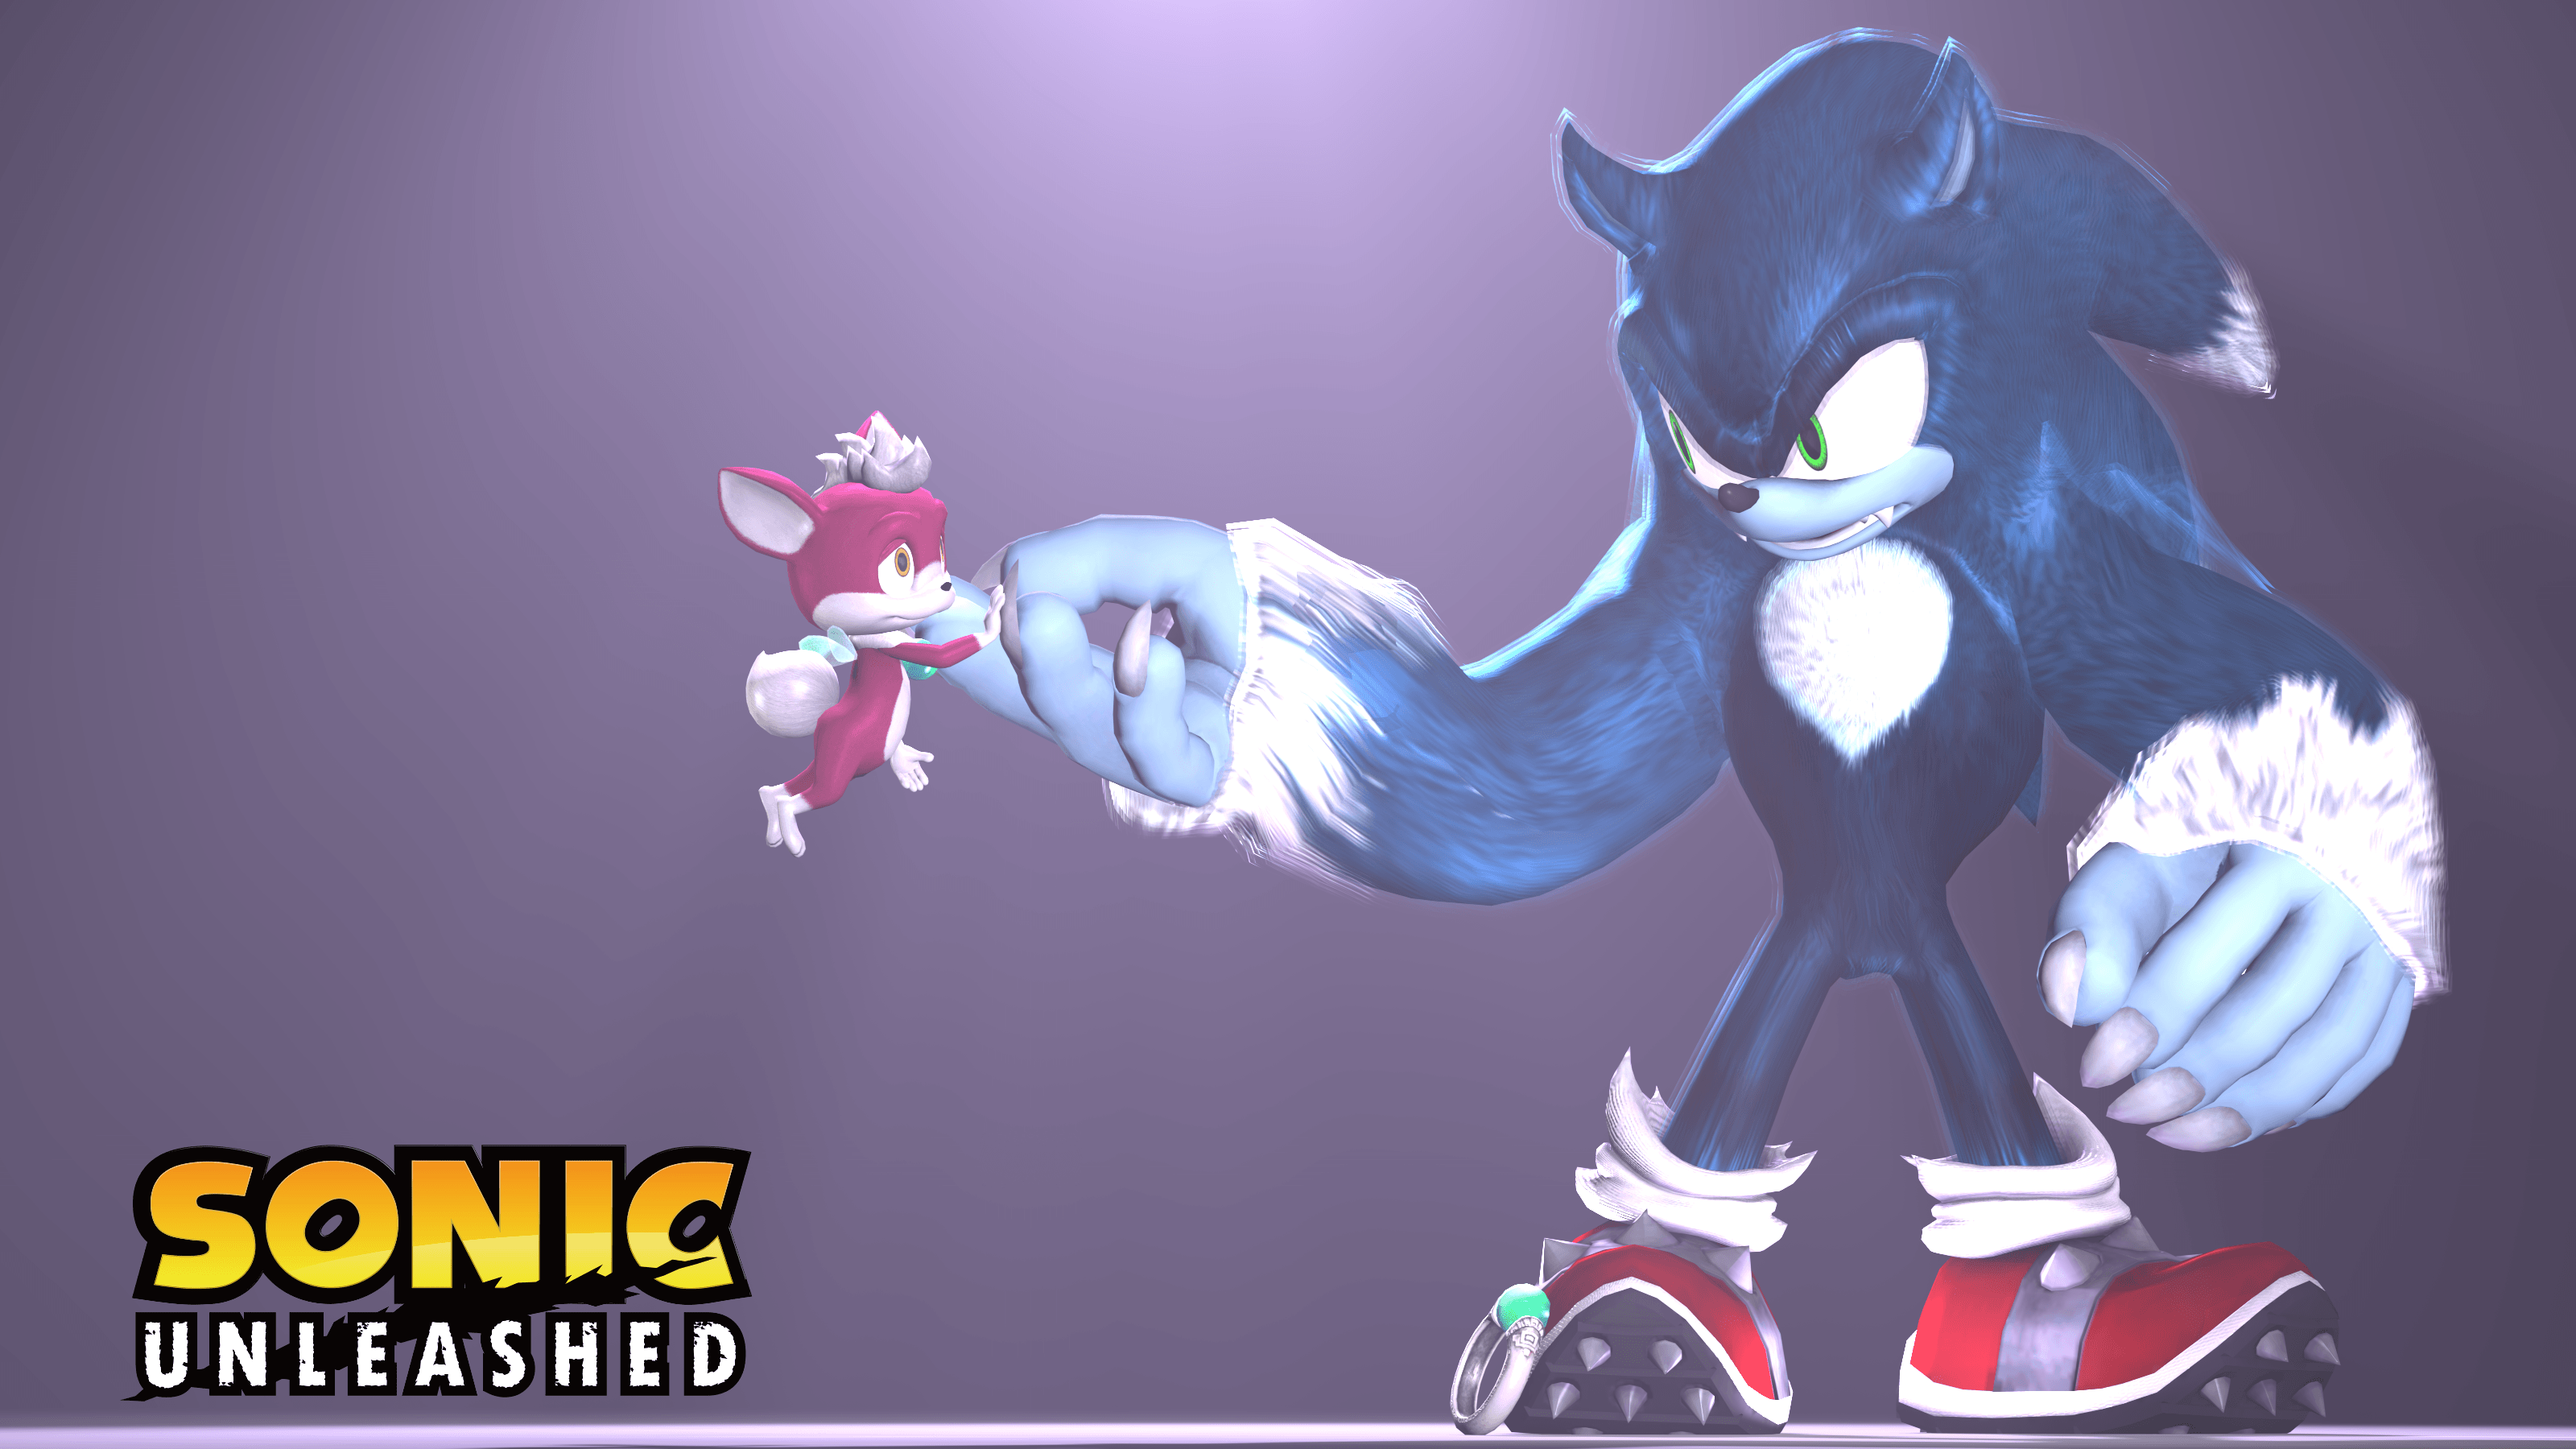 Sonic Unleashed Wallpapers 37 Gallery Of Photos